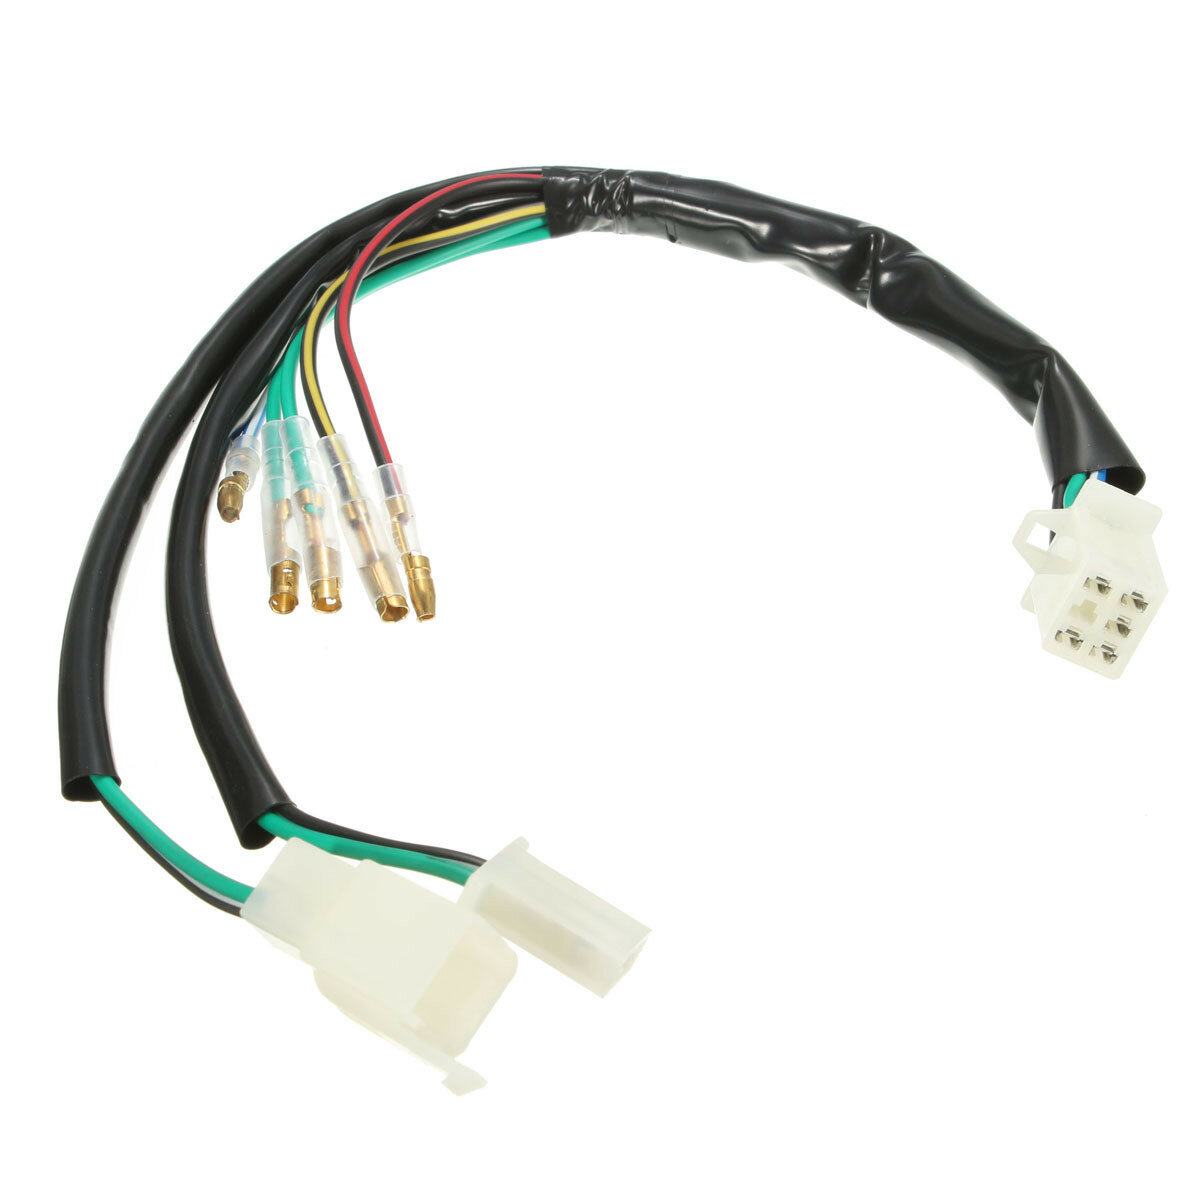 Electric Wiring Harness Loom For 50cc 90cc 110cc 125cc 140cc Pit Dirt on chinese atv fuel tank, chinese atv fuel line, 50cc atv wiring harness, chinese atv fuel pump, tao tao atv wiring harness, chinese gy6 150cc engine, chinese atv intake manifold, chinese go kart ignition switch for, chinese atv voltage regulator, chinese atv oil cooler, chinese atv replacement parts, chinese atv engine diagram, chinese atv tail light, chinese four wheeler body parts, chinese dirt bike parts, chinese cdi wiring, chinese atv instrument cluster, chinese 200 atv wiring diagrams, chinese atv fenders,